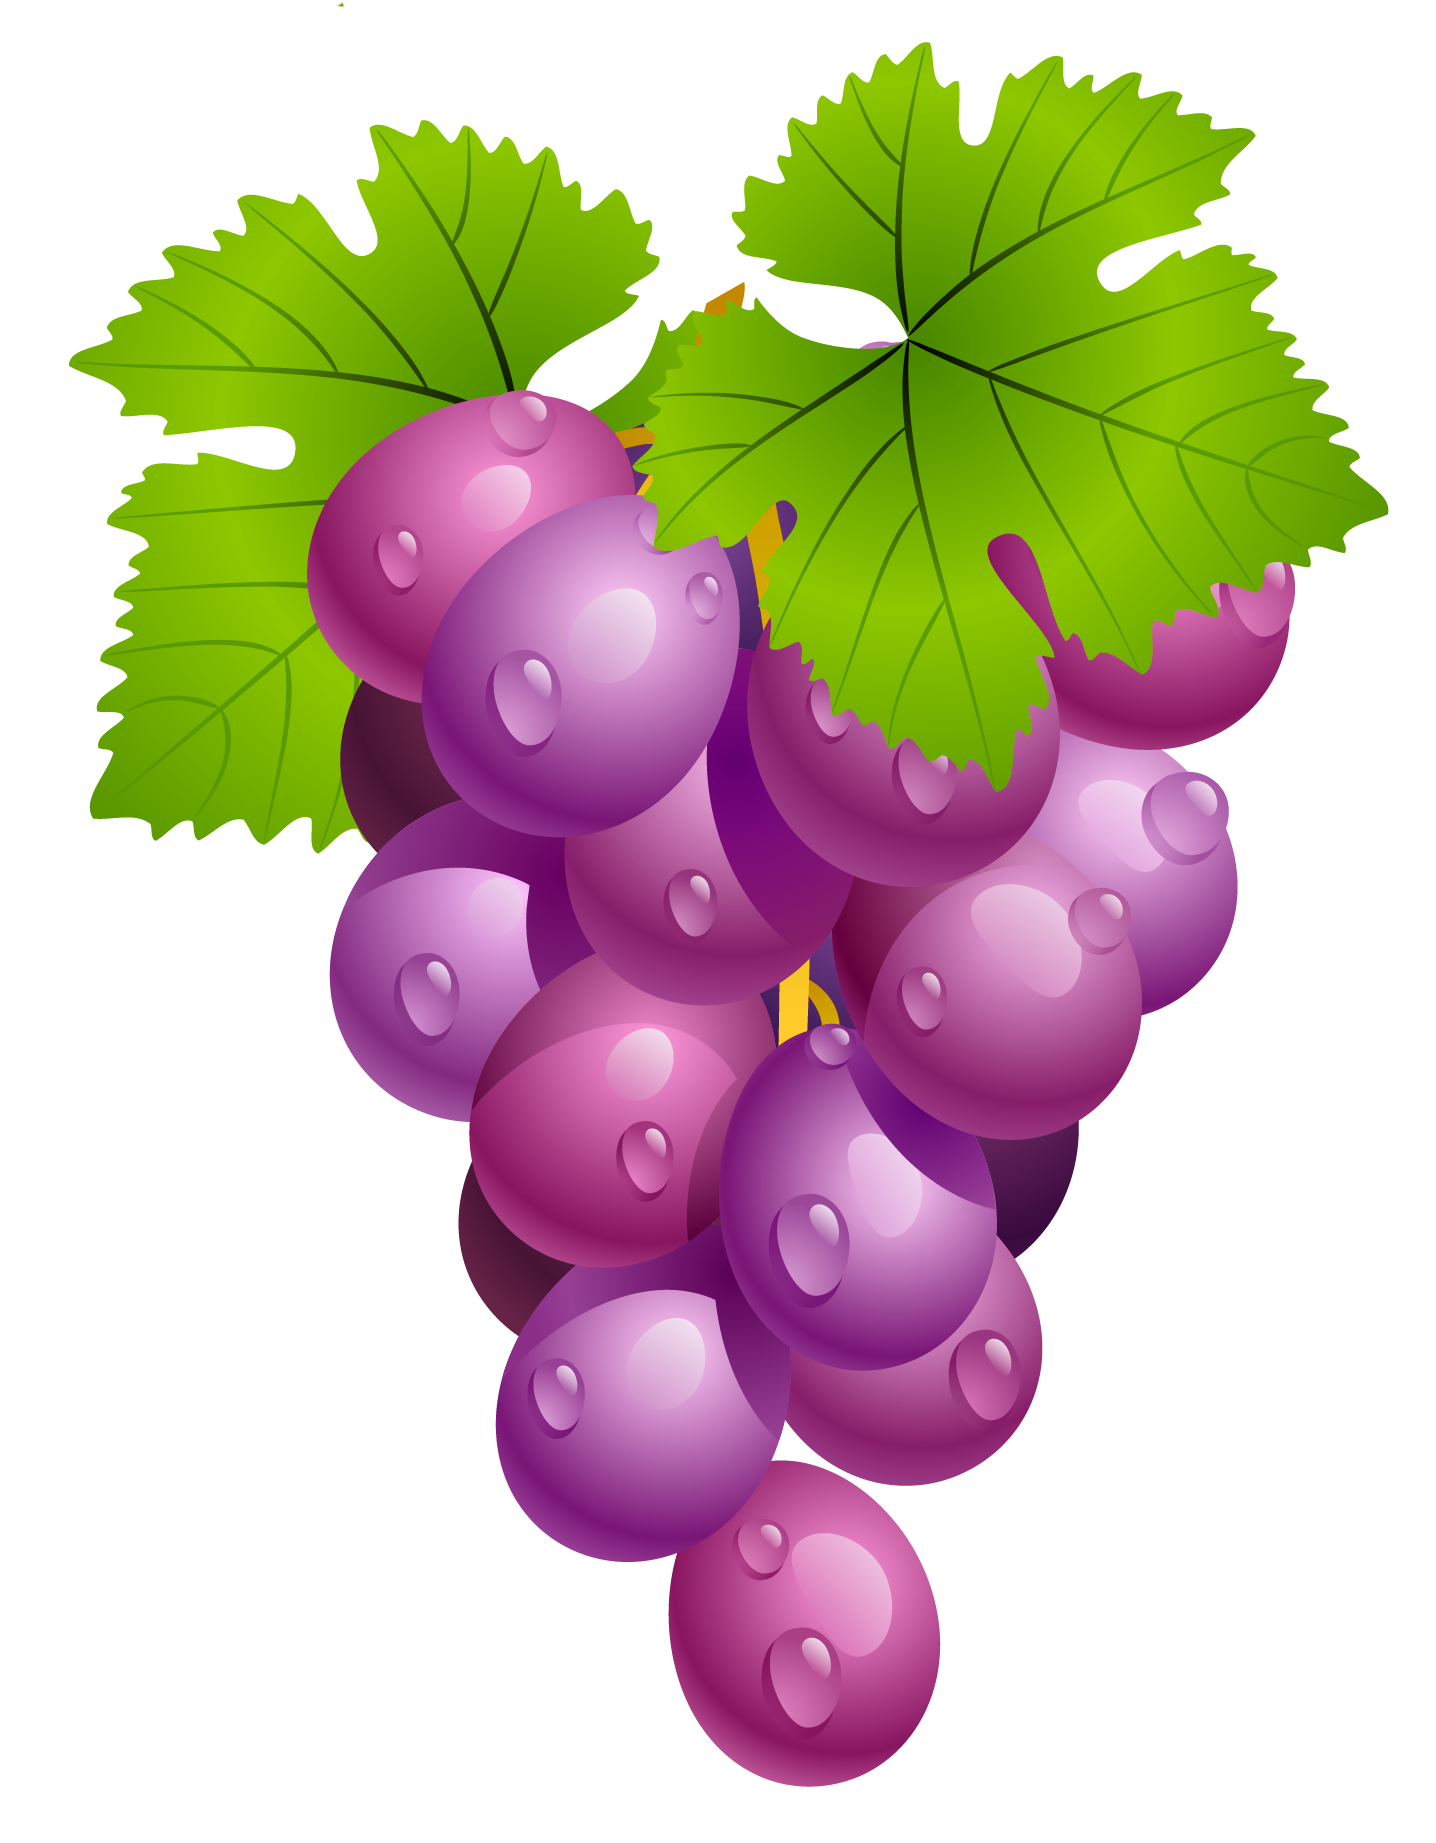 Pin By Mag Da Lena On Png Plody Clip Art Fruit Art